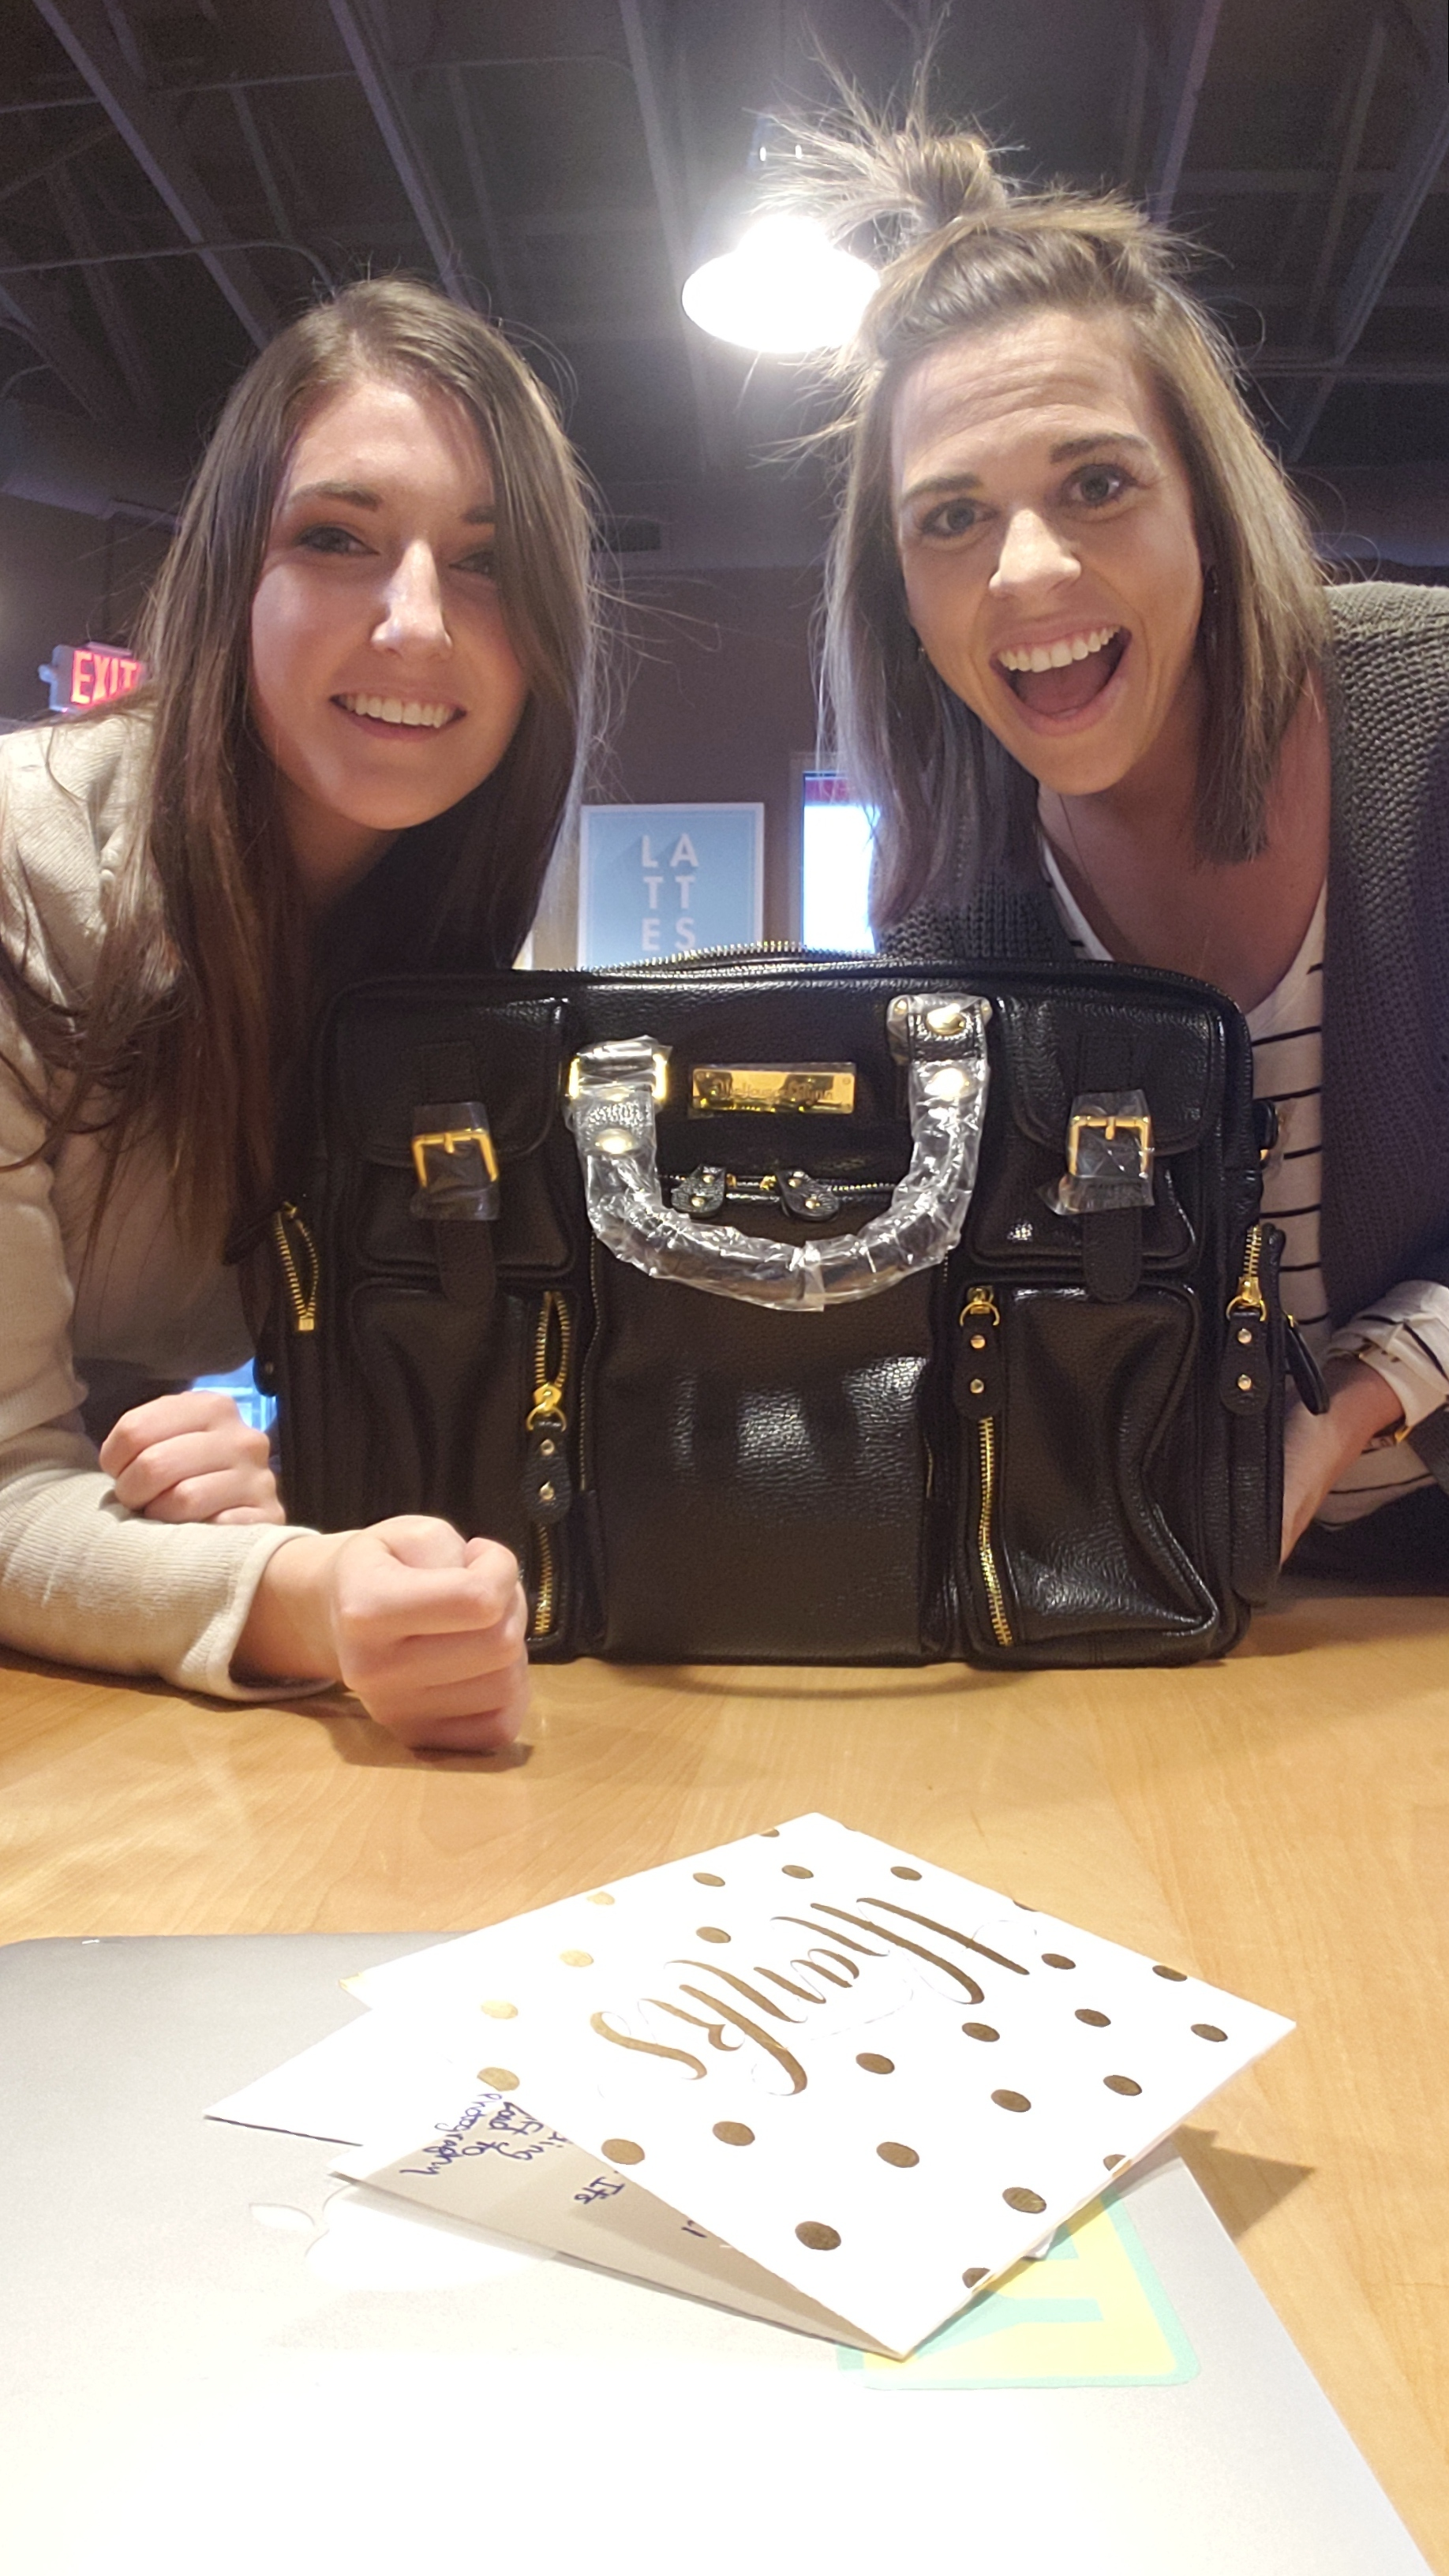 house of flynn bag giveaway kristen jensen from k.jensen photography and kelsey homolka nerud from dirt road potography pay it forward with a community over competition collaboration and meet for coffee and talk about being photographers and the business of cameras, nikon, canon